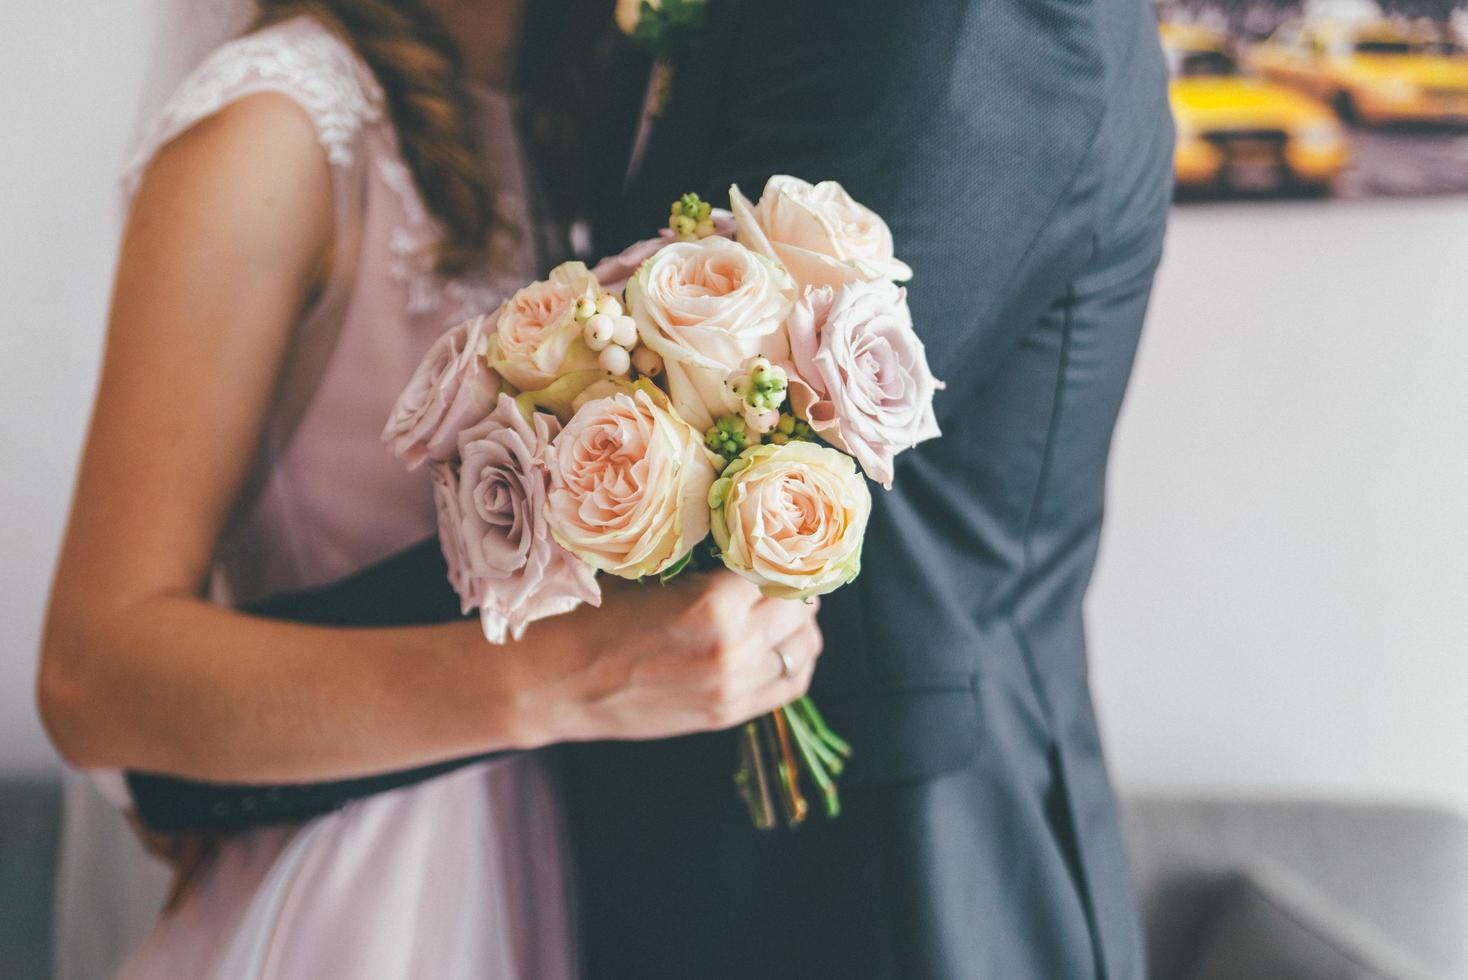 Married couple hugging and holding flowers photo